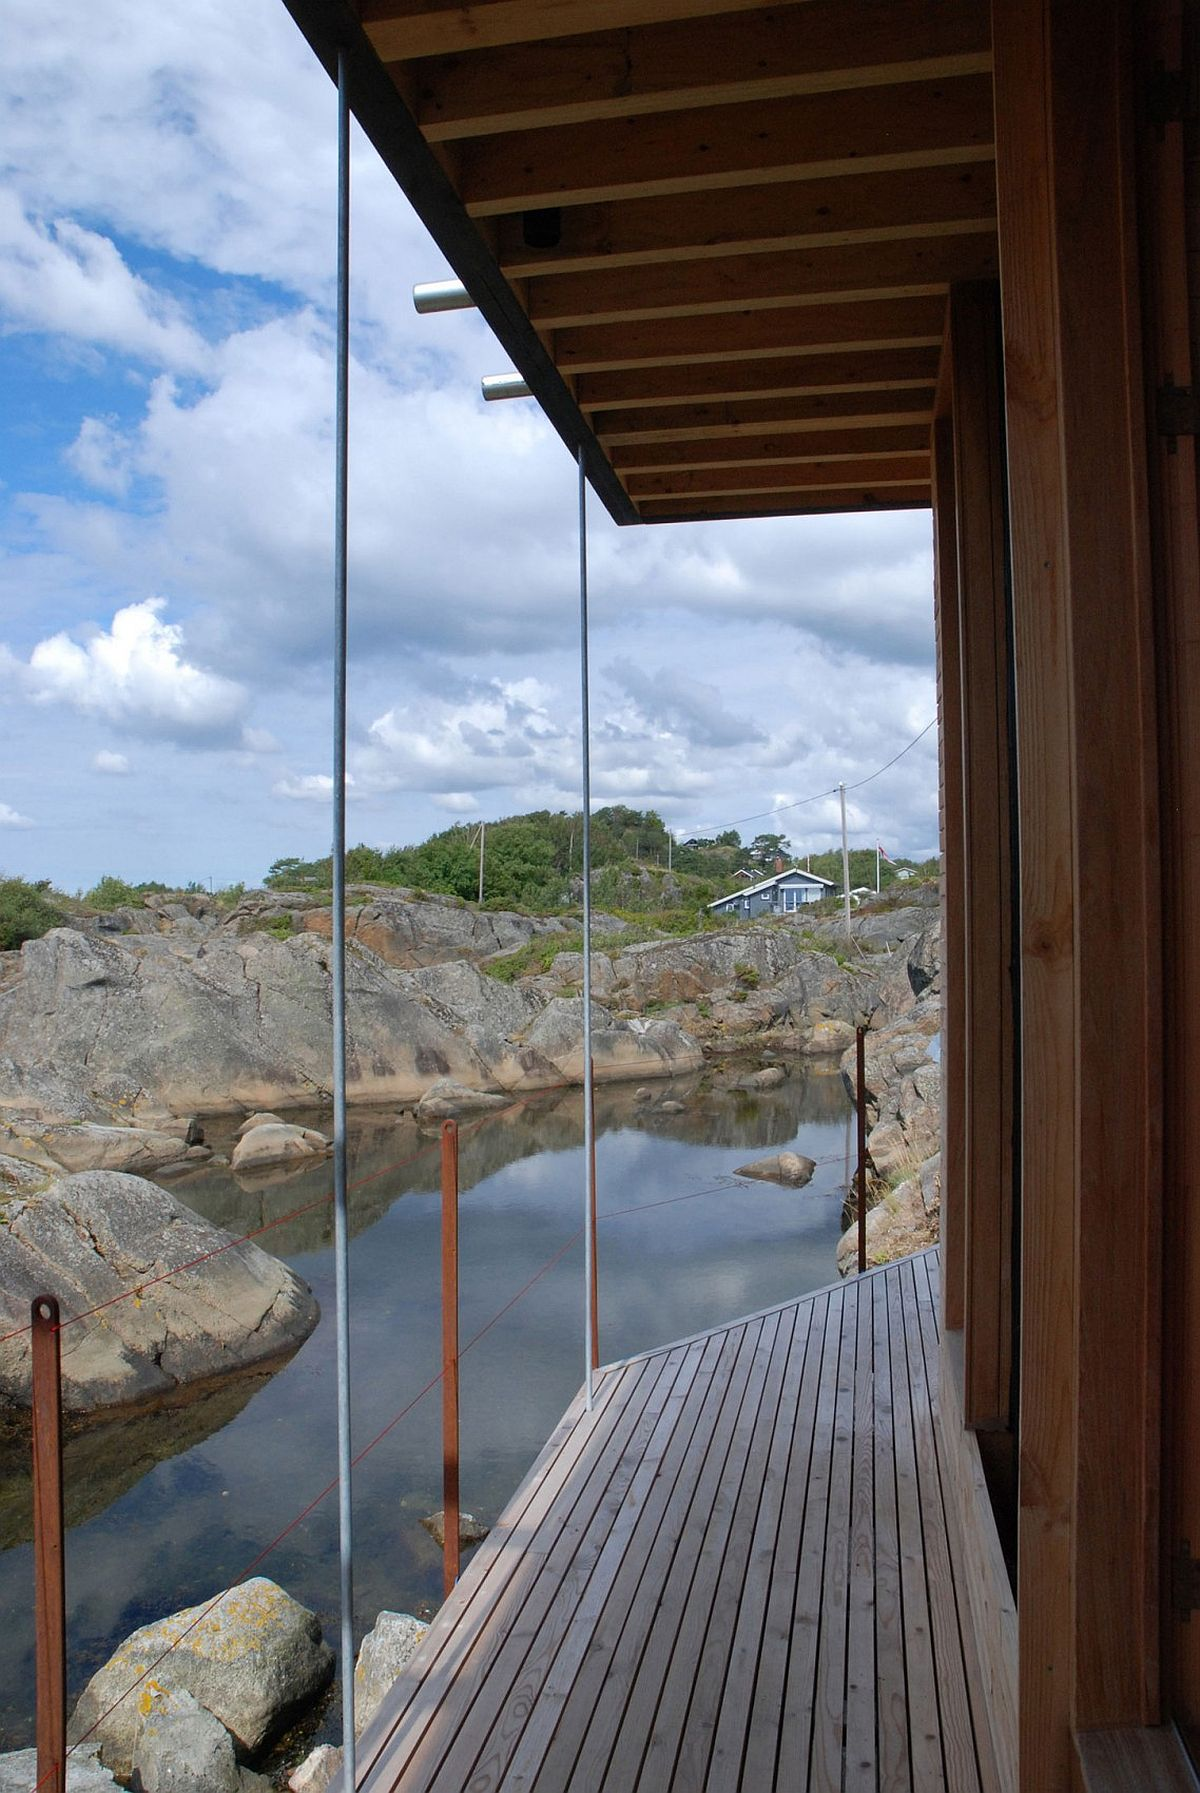 Design of the island retreat offers protection from the elements